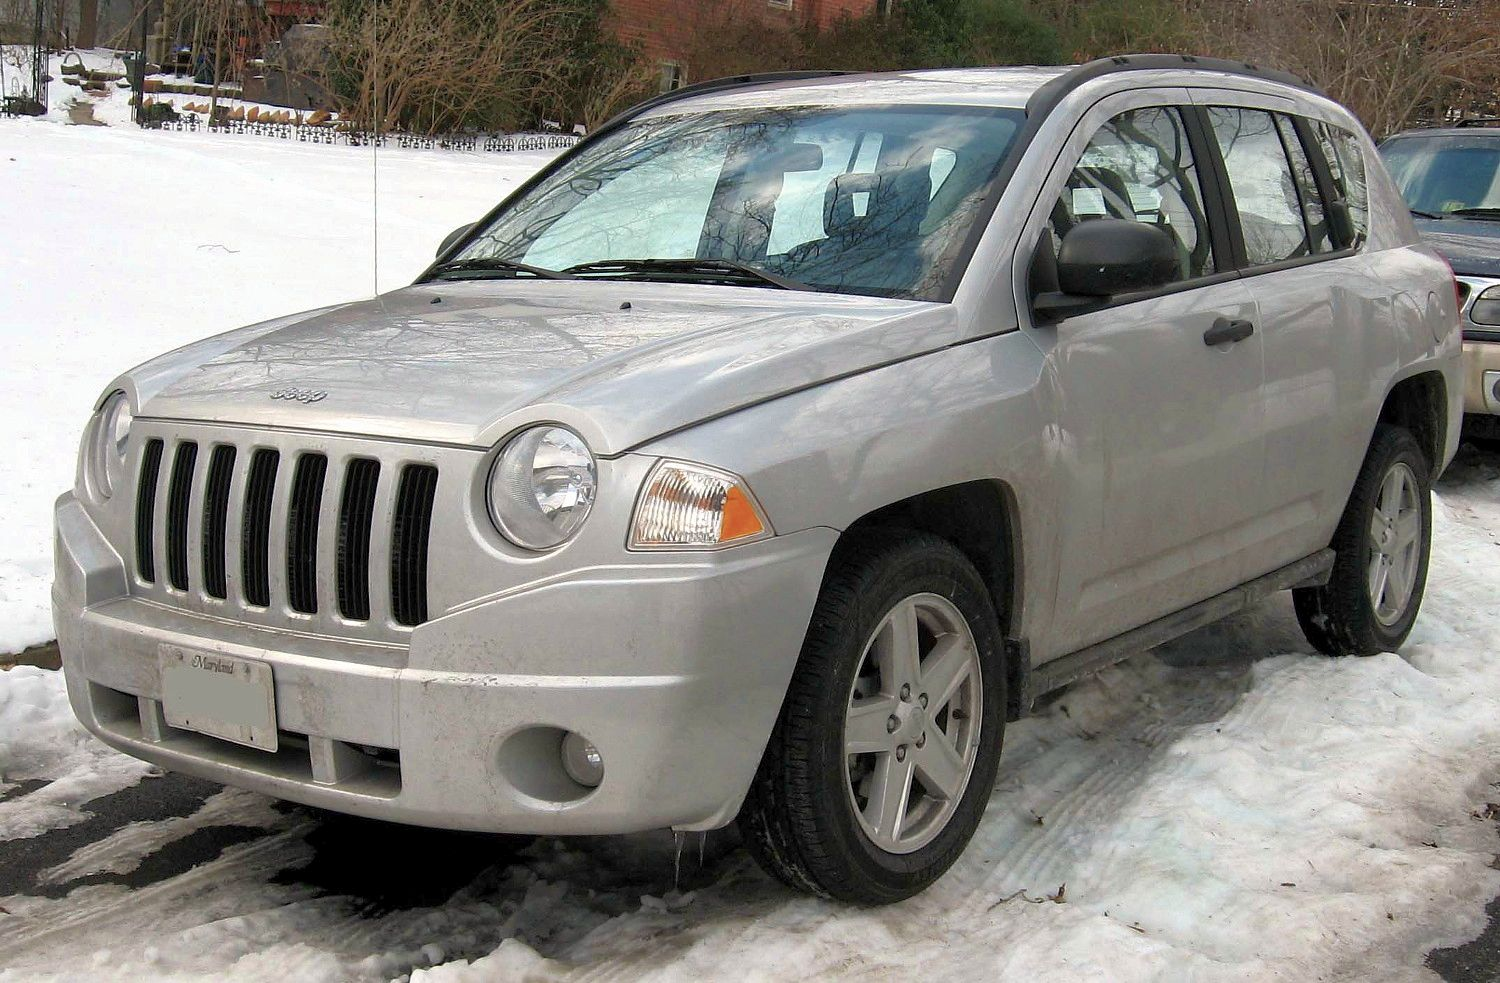 Best Used Cars For Snow - Jeep